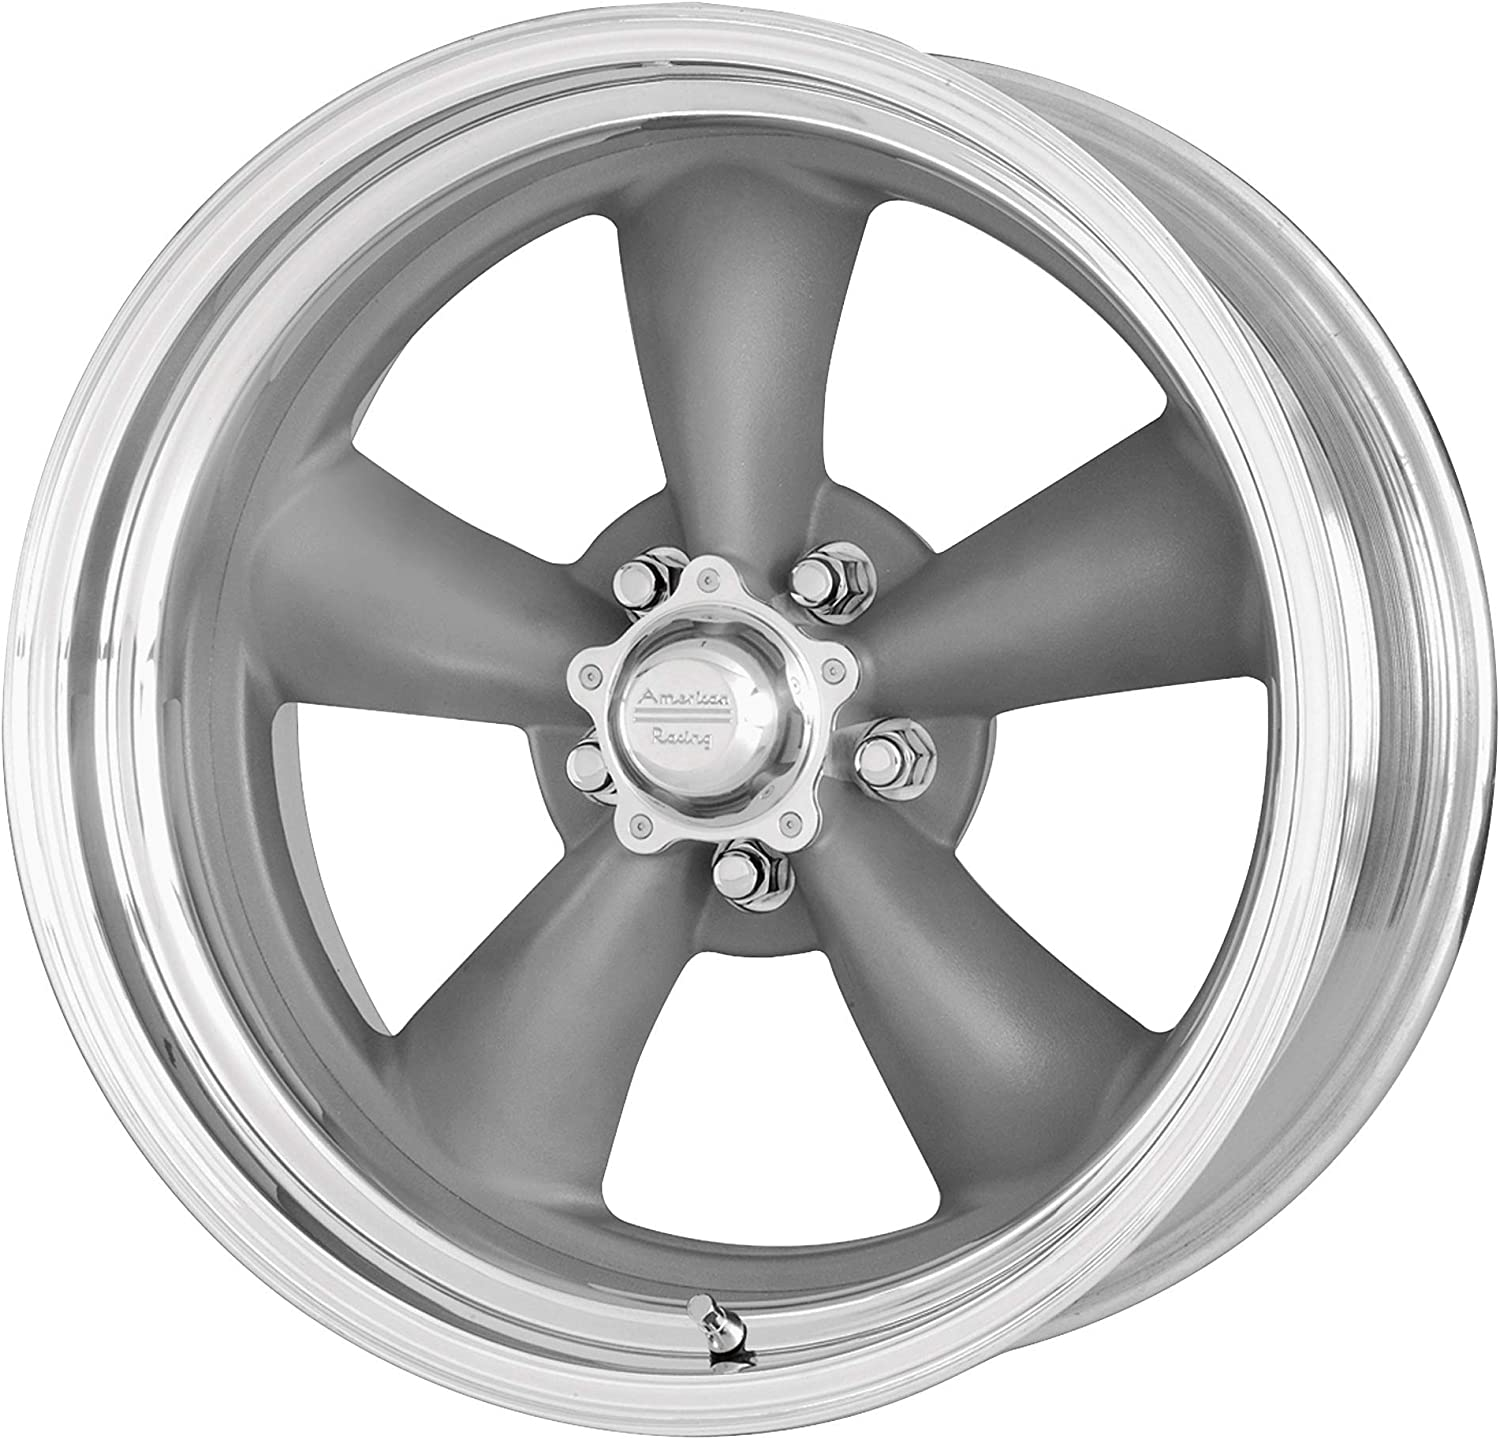 Deal on NEW before selling ☆ Wheels VNCL215 14X6 -2MM Large special price 5X4.5 AFTERMARKET MACH-LP M-Gry